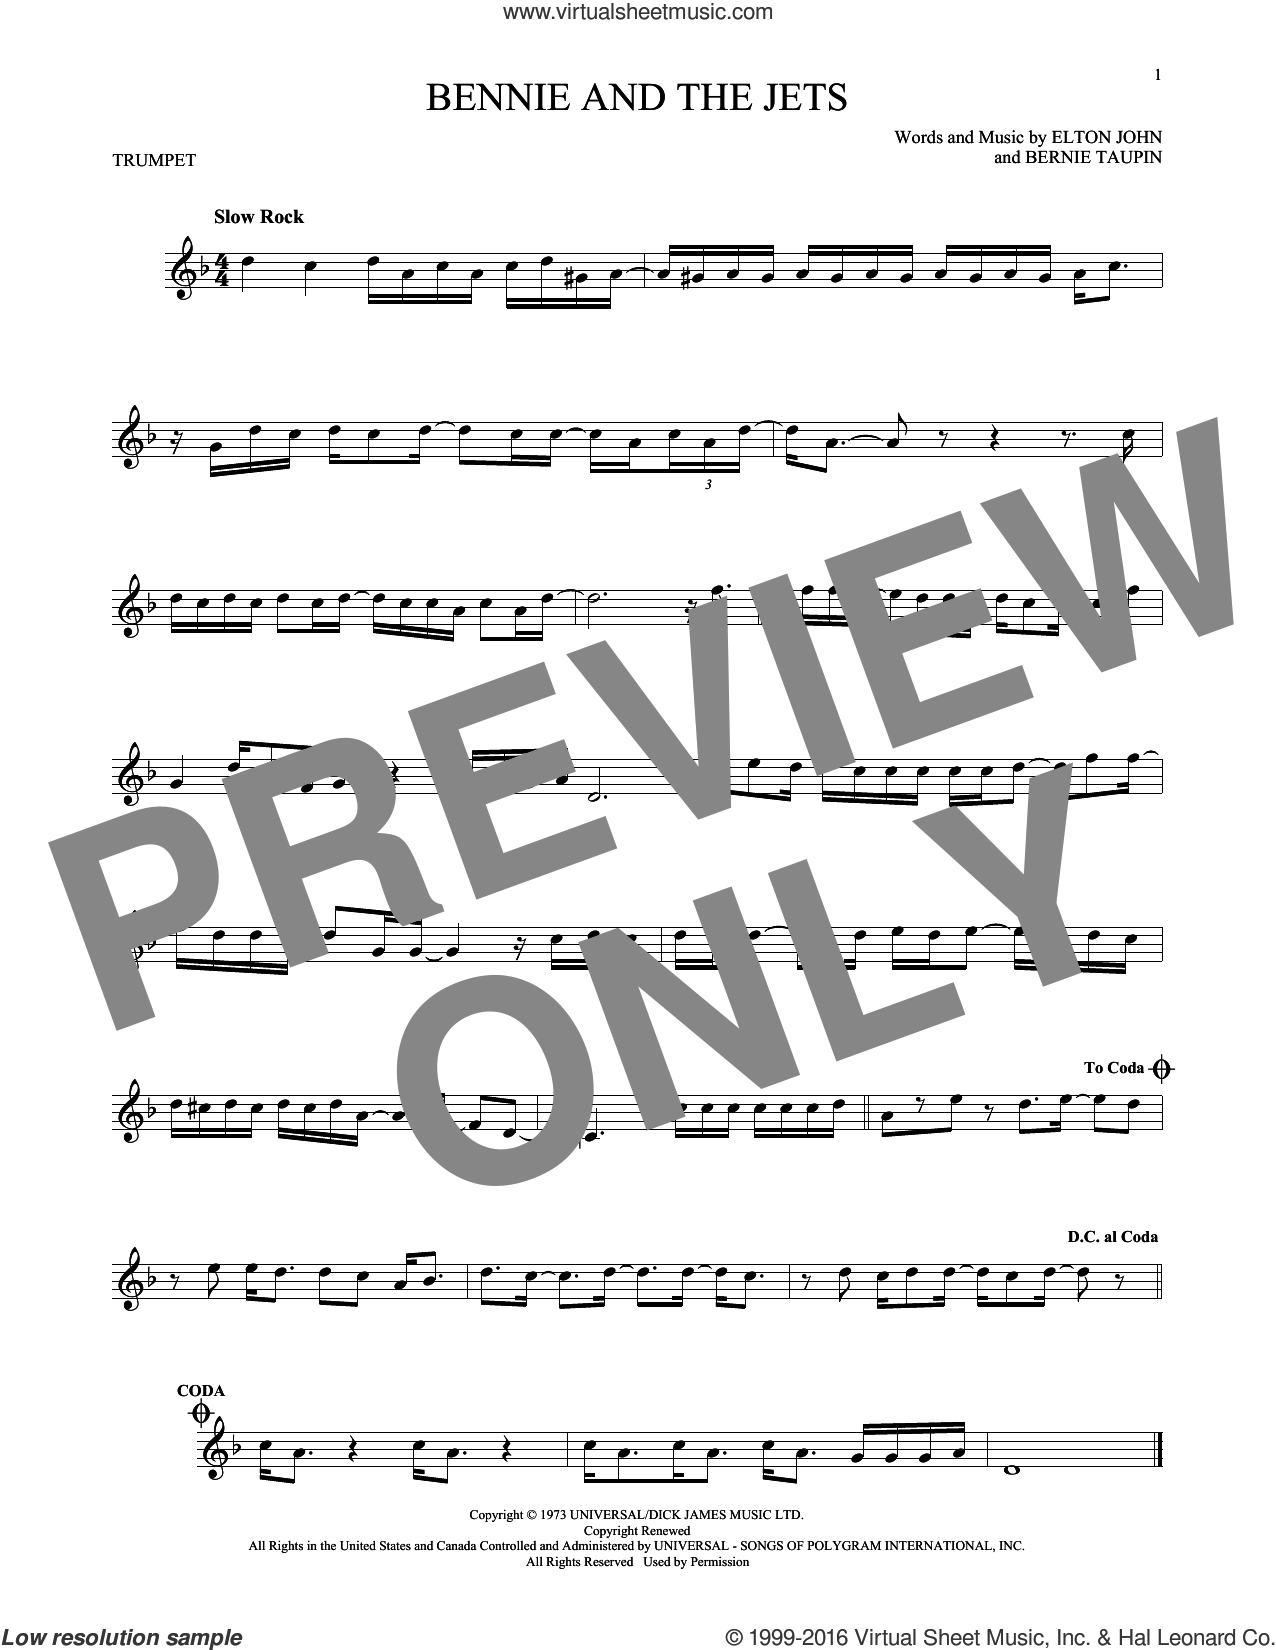 Bennie And The Jets sheet music for trumpet solo by Bernie Taupin and Elton John. Score Image Preview.